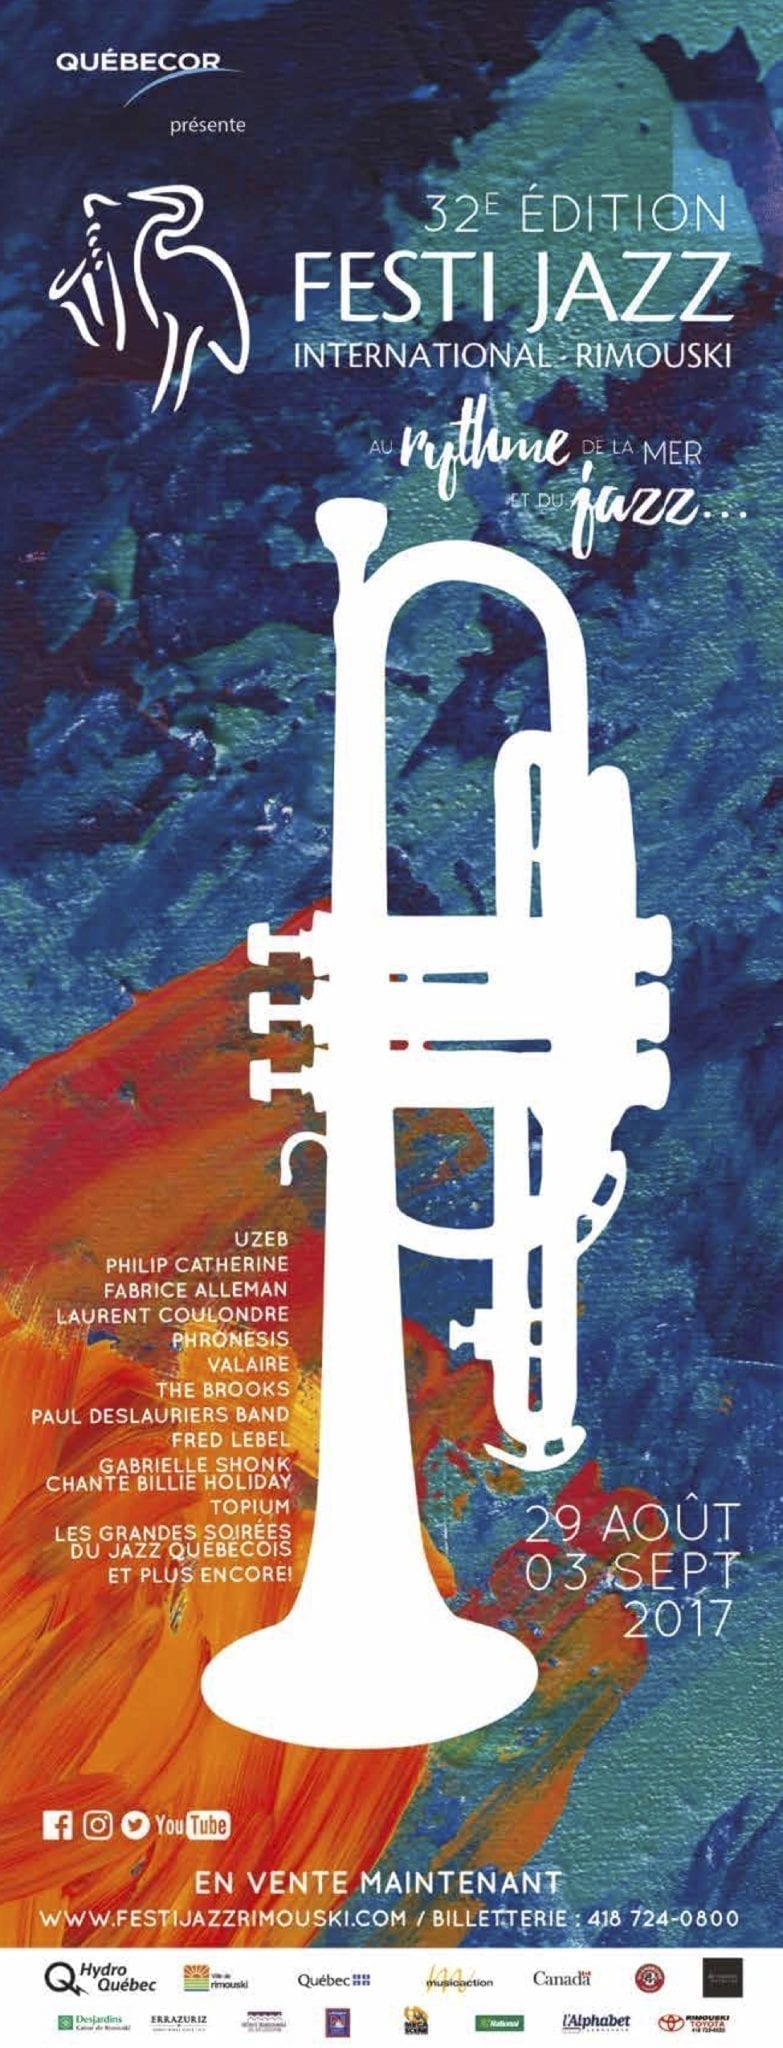 Previous editions of the Festi Jazz